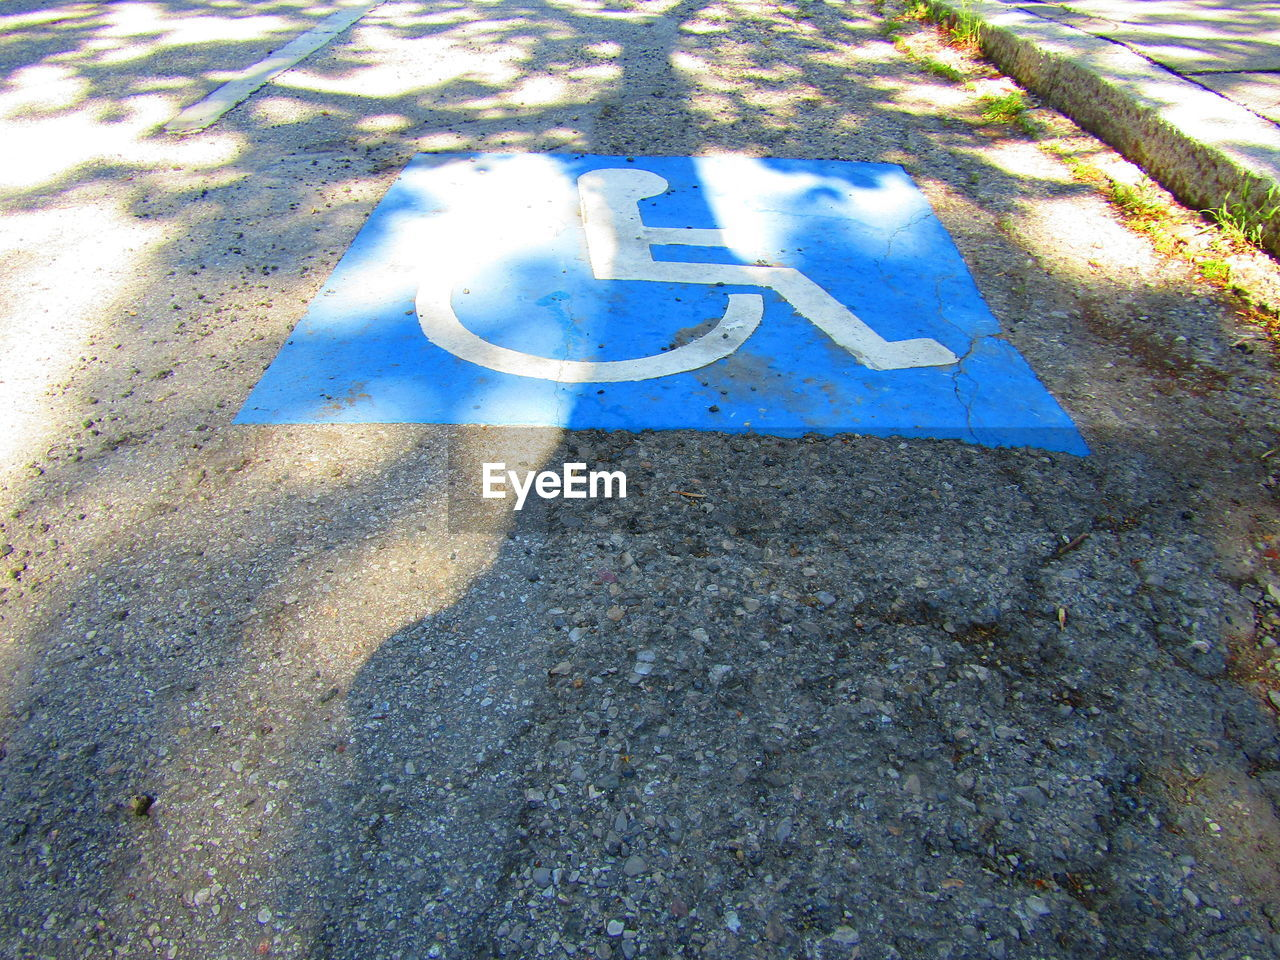 human representation, day, outdoors, no people, wheelchair, physical impairment, differing abilities, wheelchair access